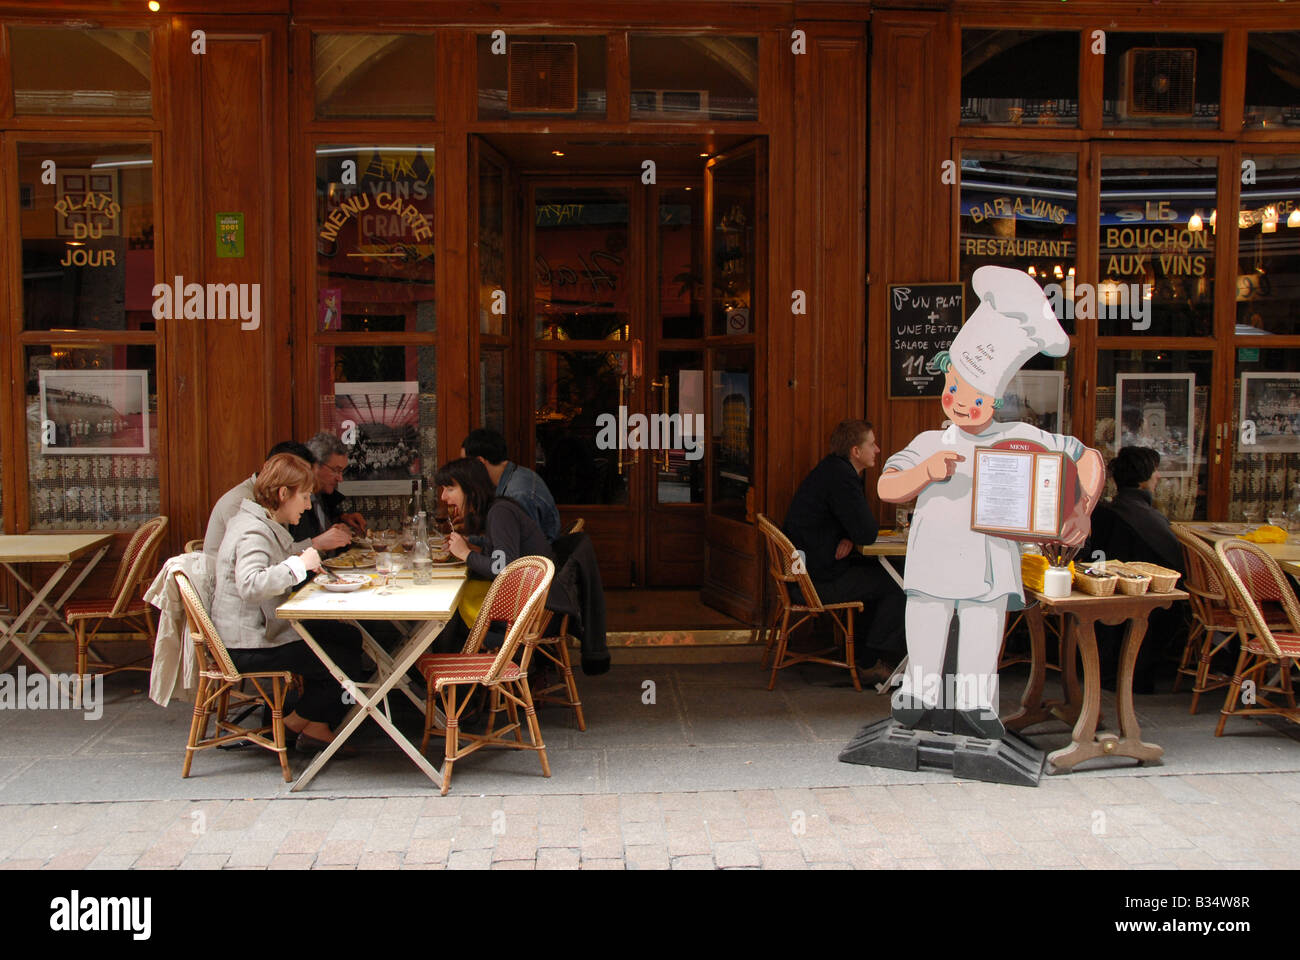 Customers enjoying a lunch outside a restaurant on Rue Merciere in the old town of Lyon, France. - Stock Image